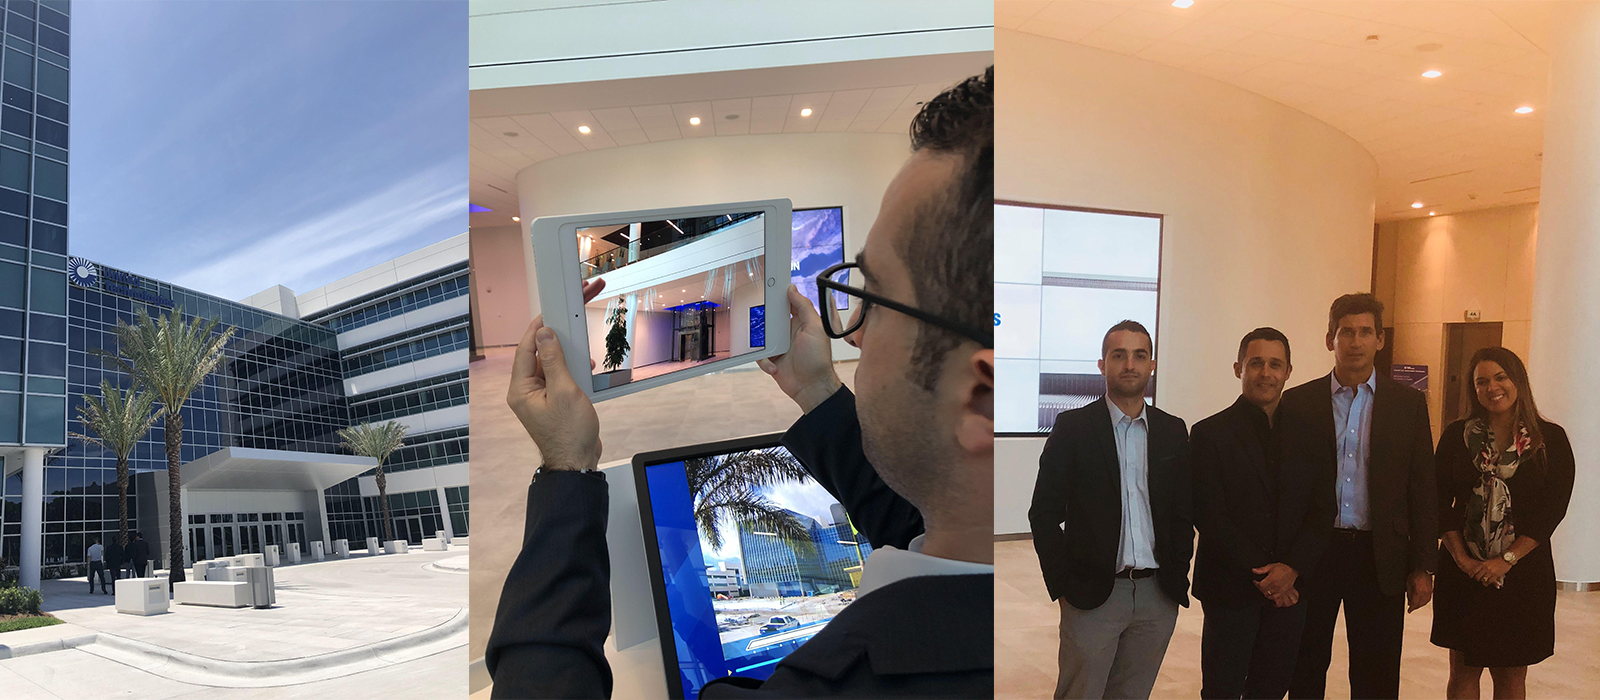 Last week we had the opportunity to visit the UTC Center for Intelligent Buildings